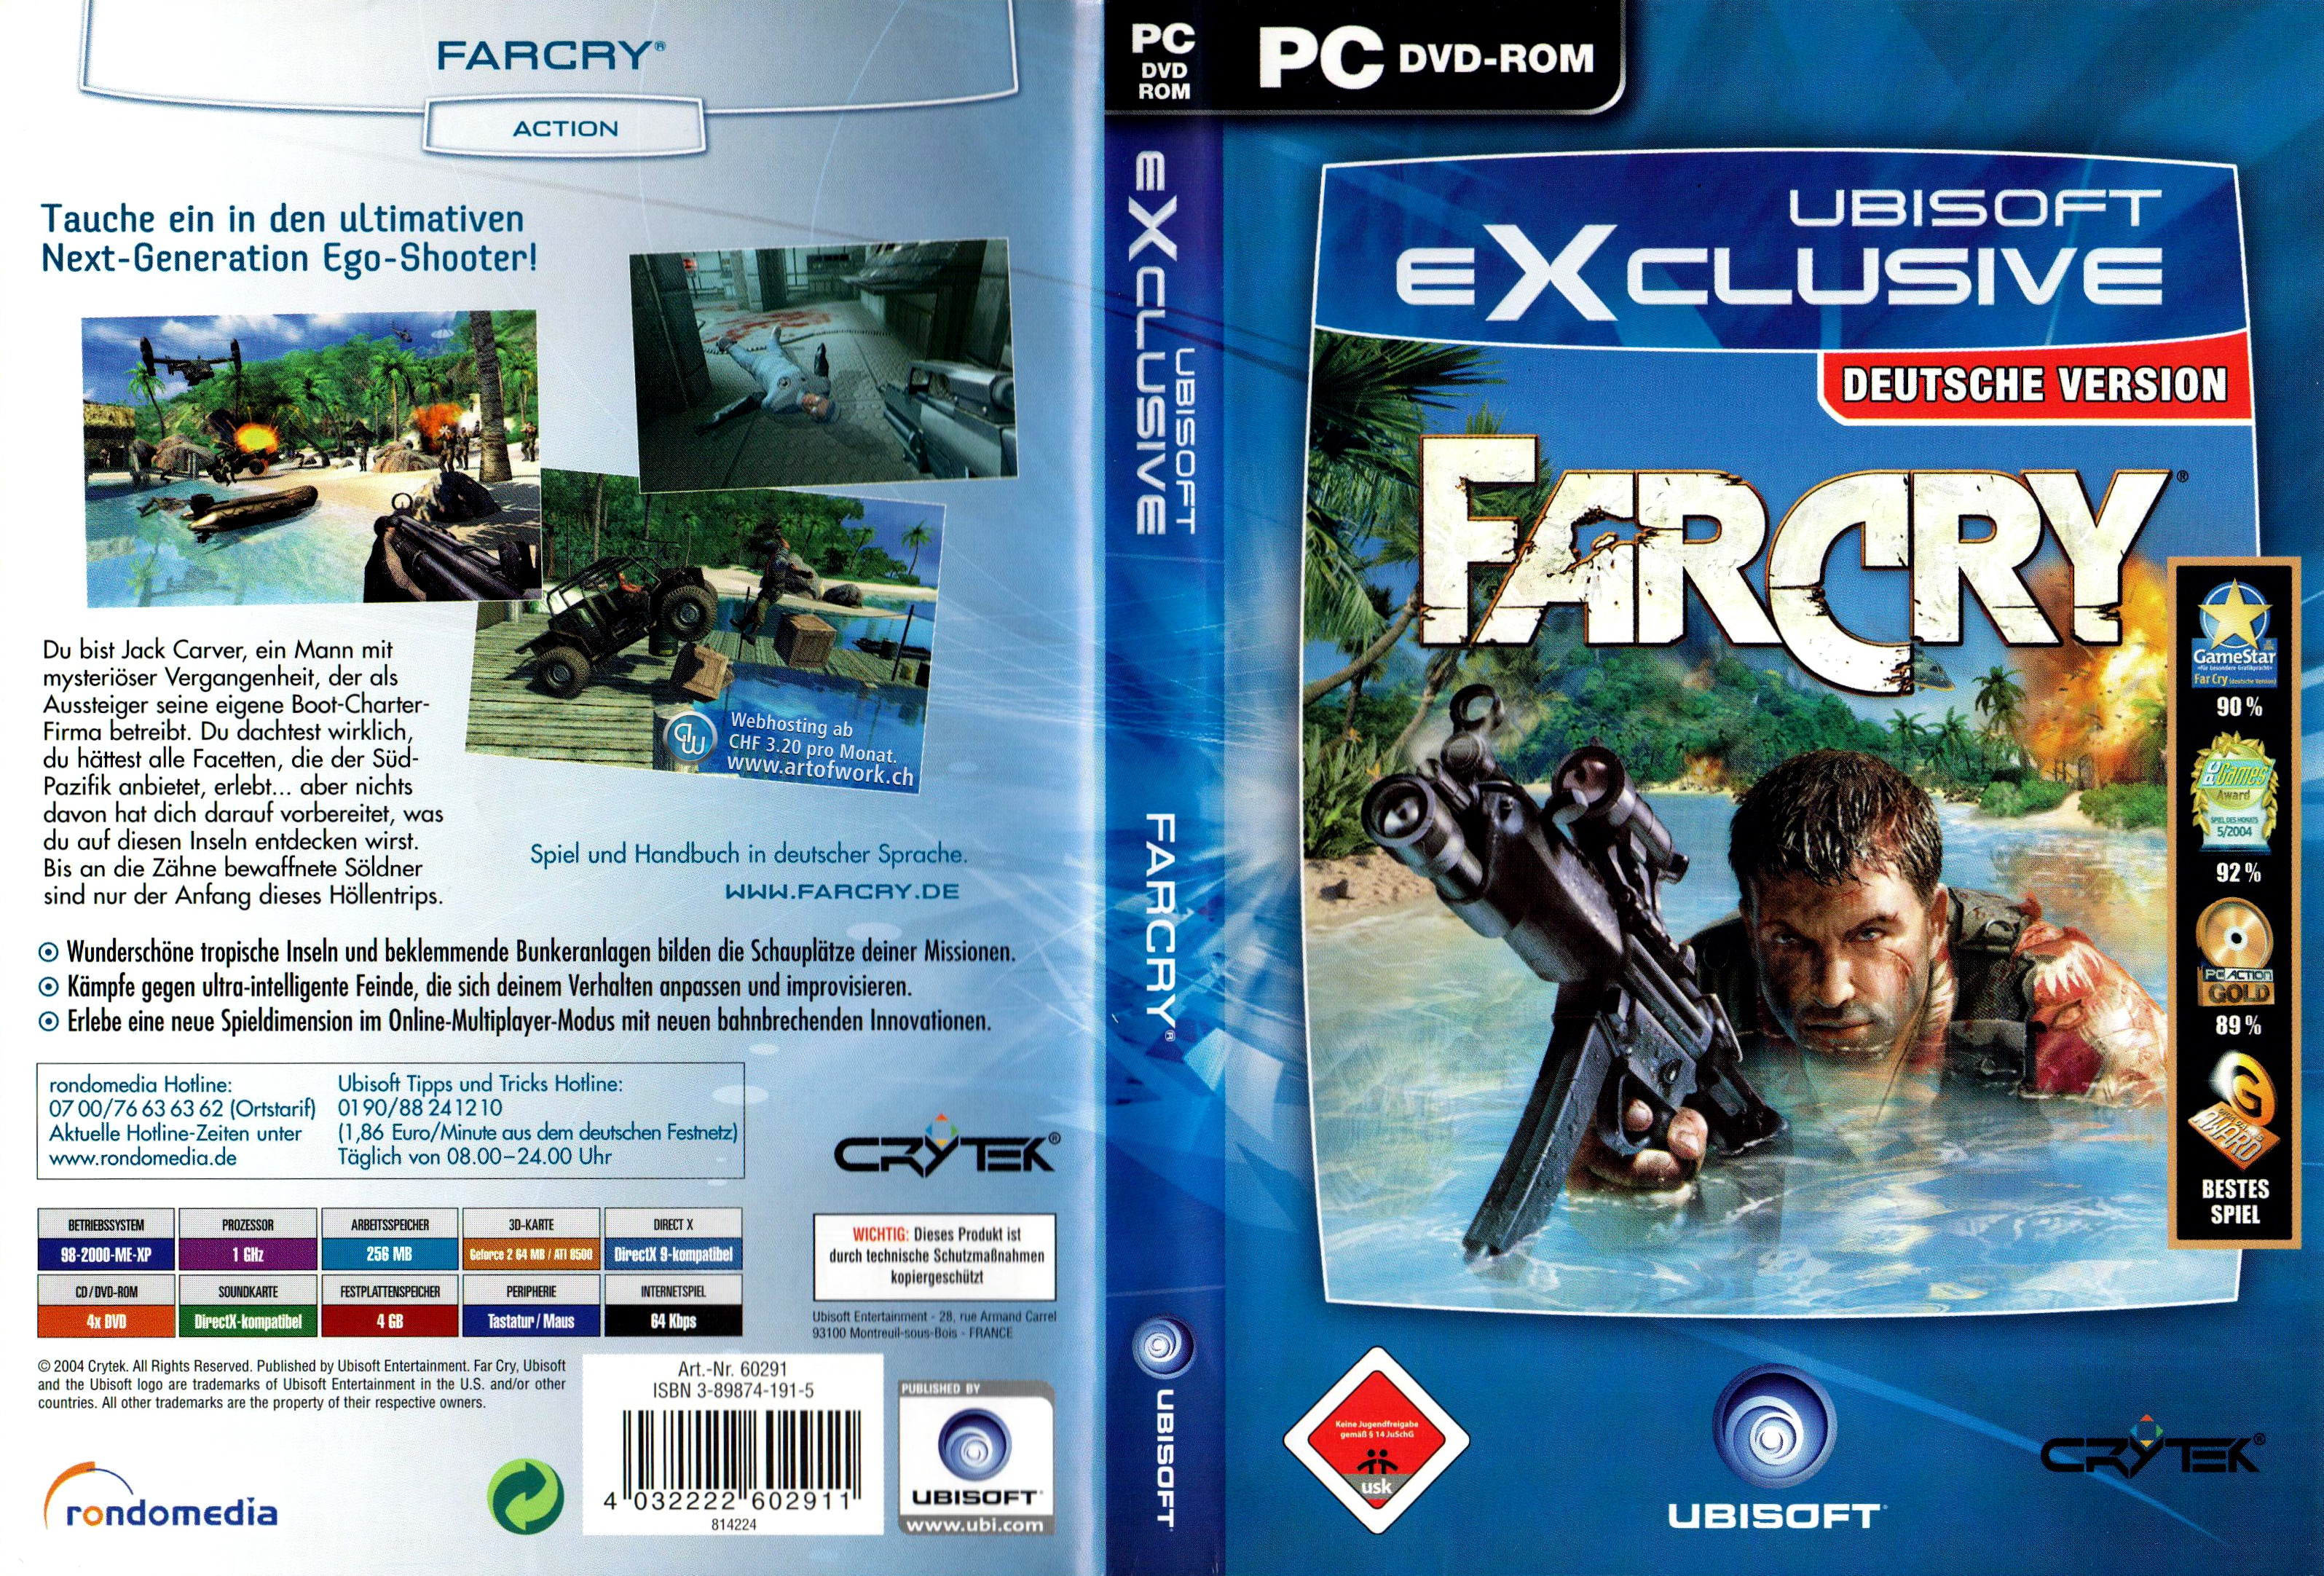 Far Cry 1 V2 Pc Covers Cover Century Over 500 000 Album Art Covers For Free